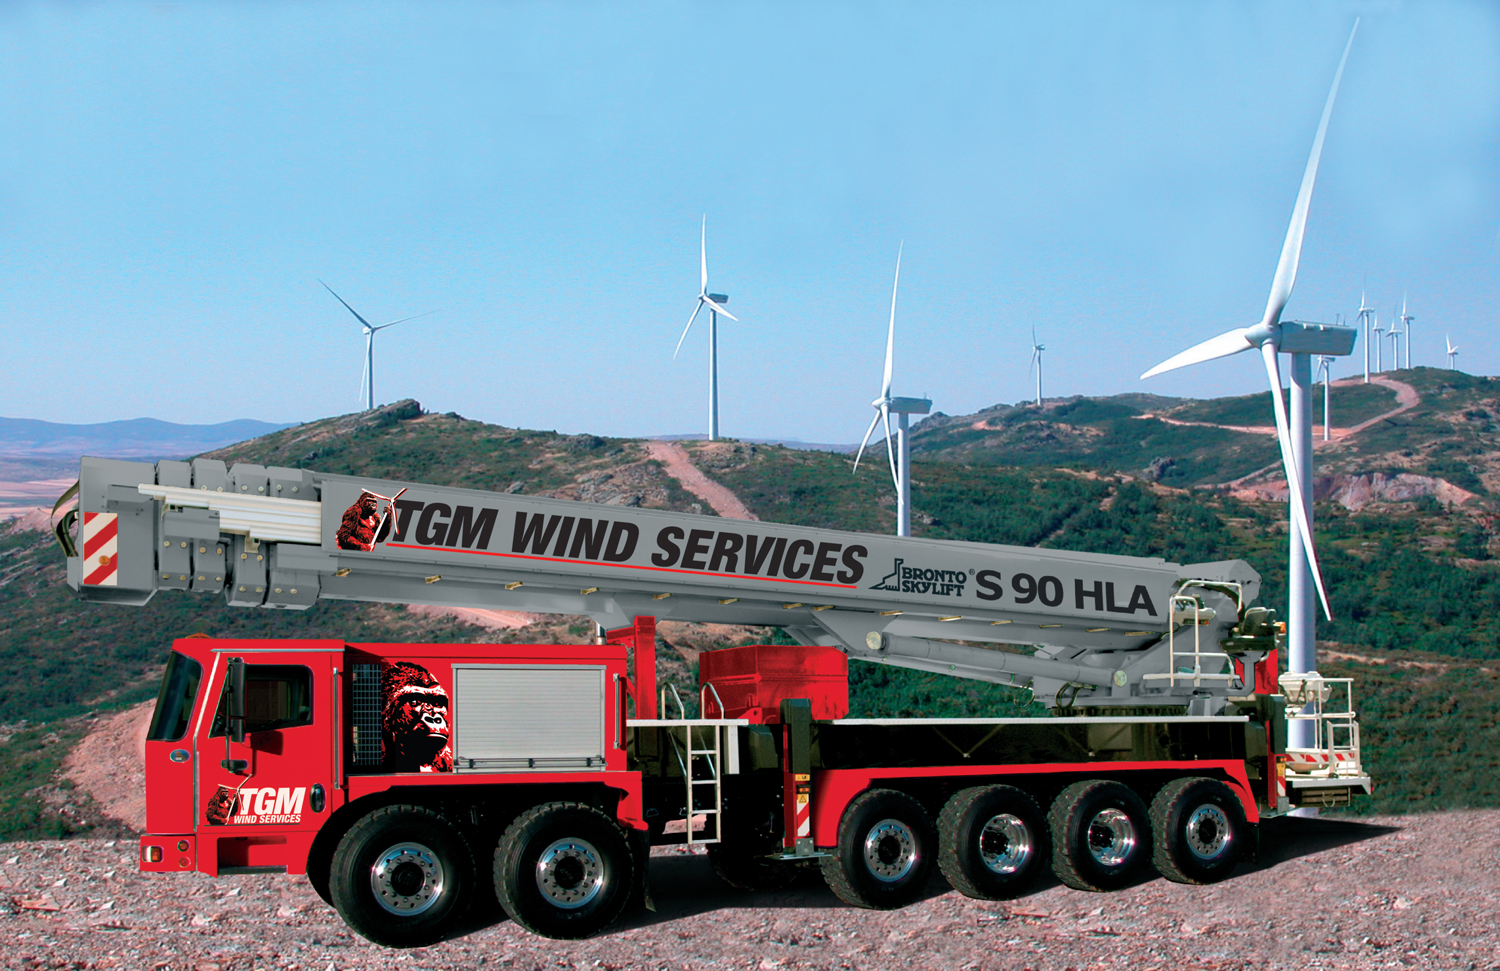 TGMs-Bronto-S-90HLA-sm Wind Services Provider Expands Partnership With Aerial Work Platform Company